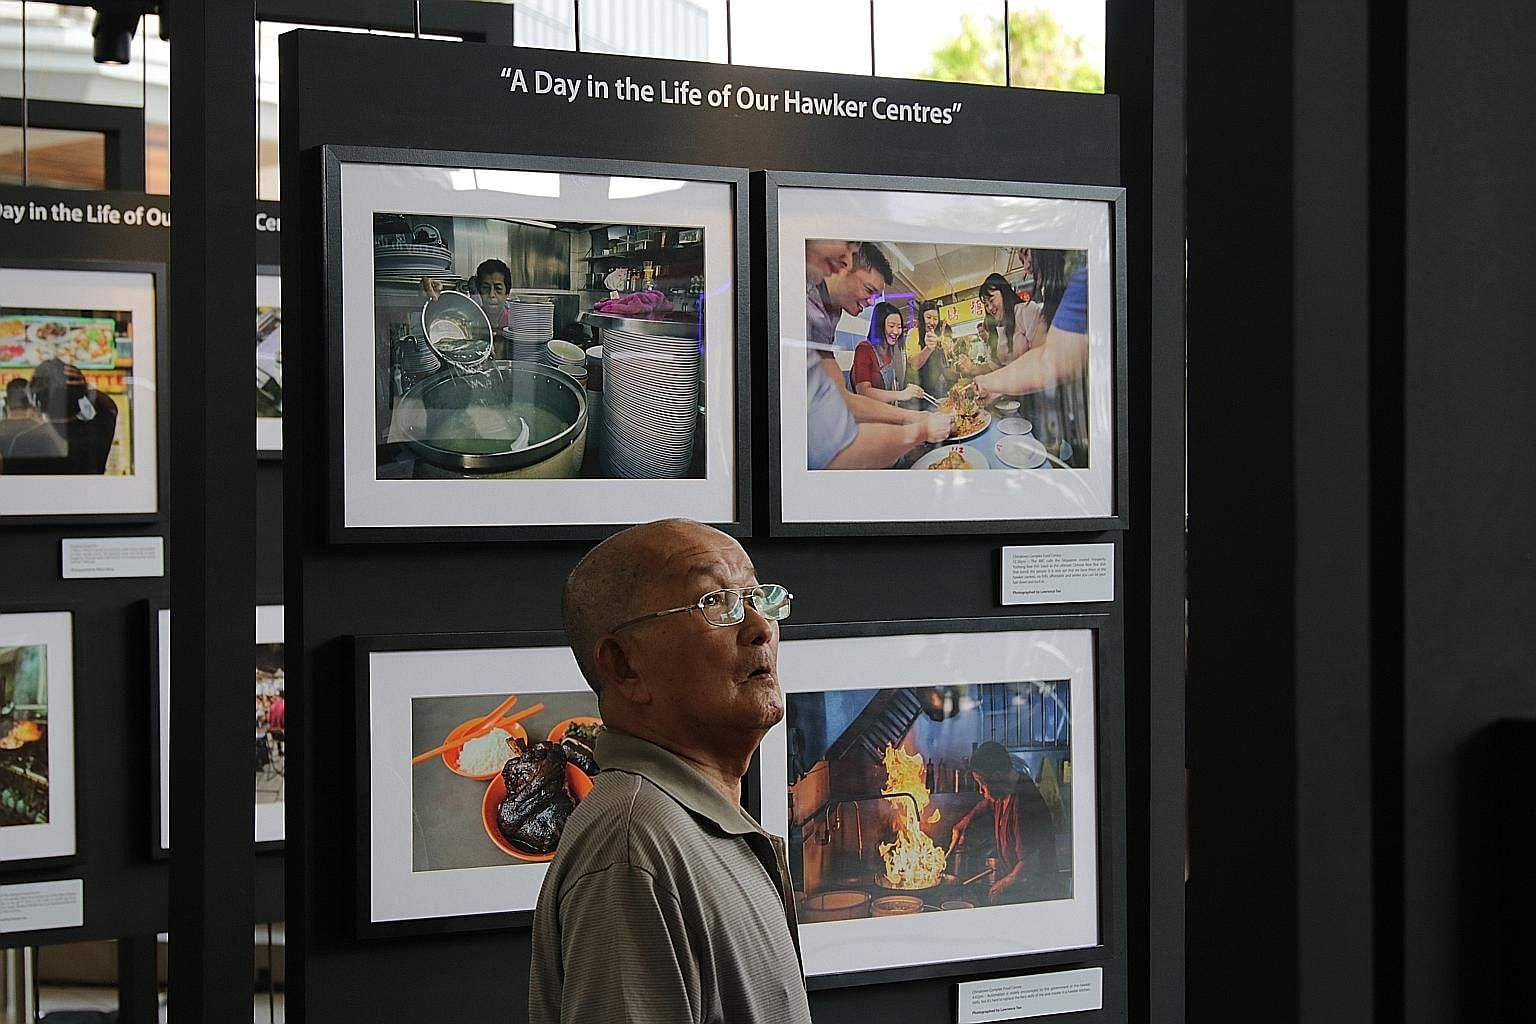 Photos for the #OurHawkerCulture photography contest were on display yesterday at Bedok Town Square, alongside a separate photography showcase on what 24 hours at five different hawker centres here look like.